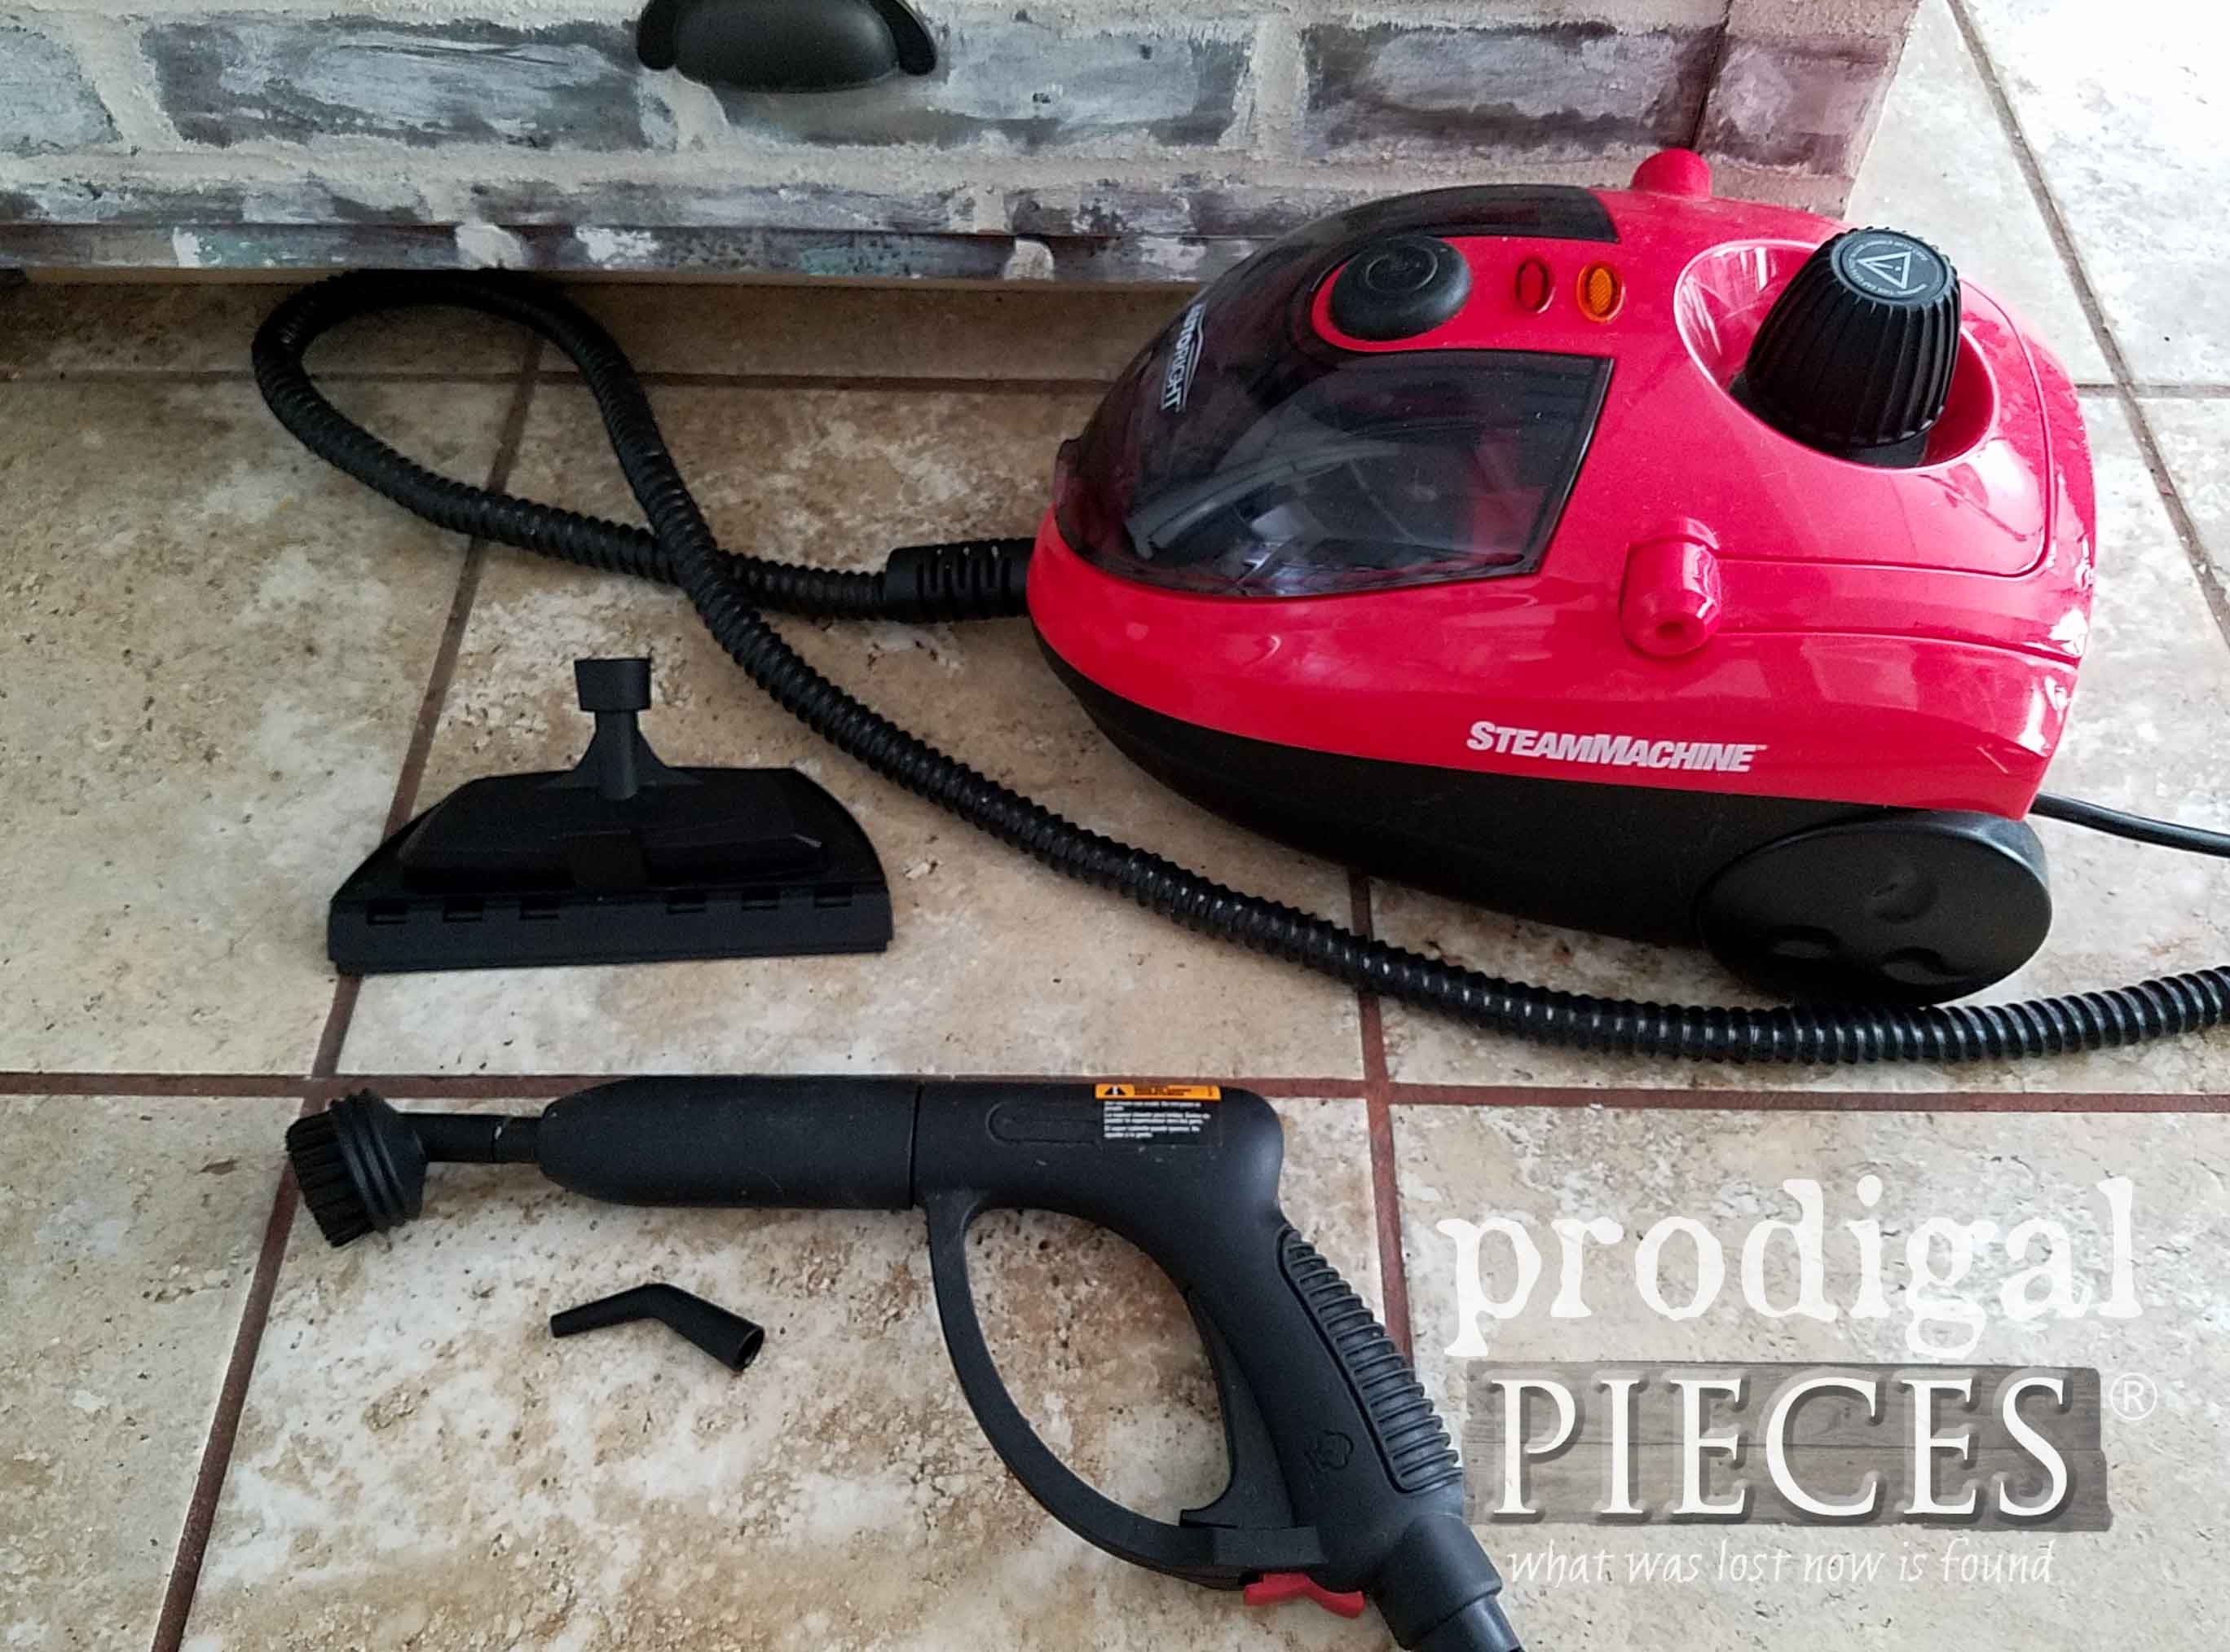 HomeRight Steam Machine for all your household cleaning needs | prodigalpieces.com